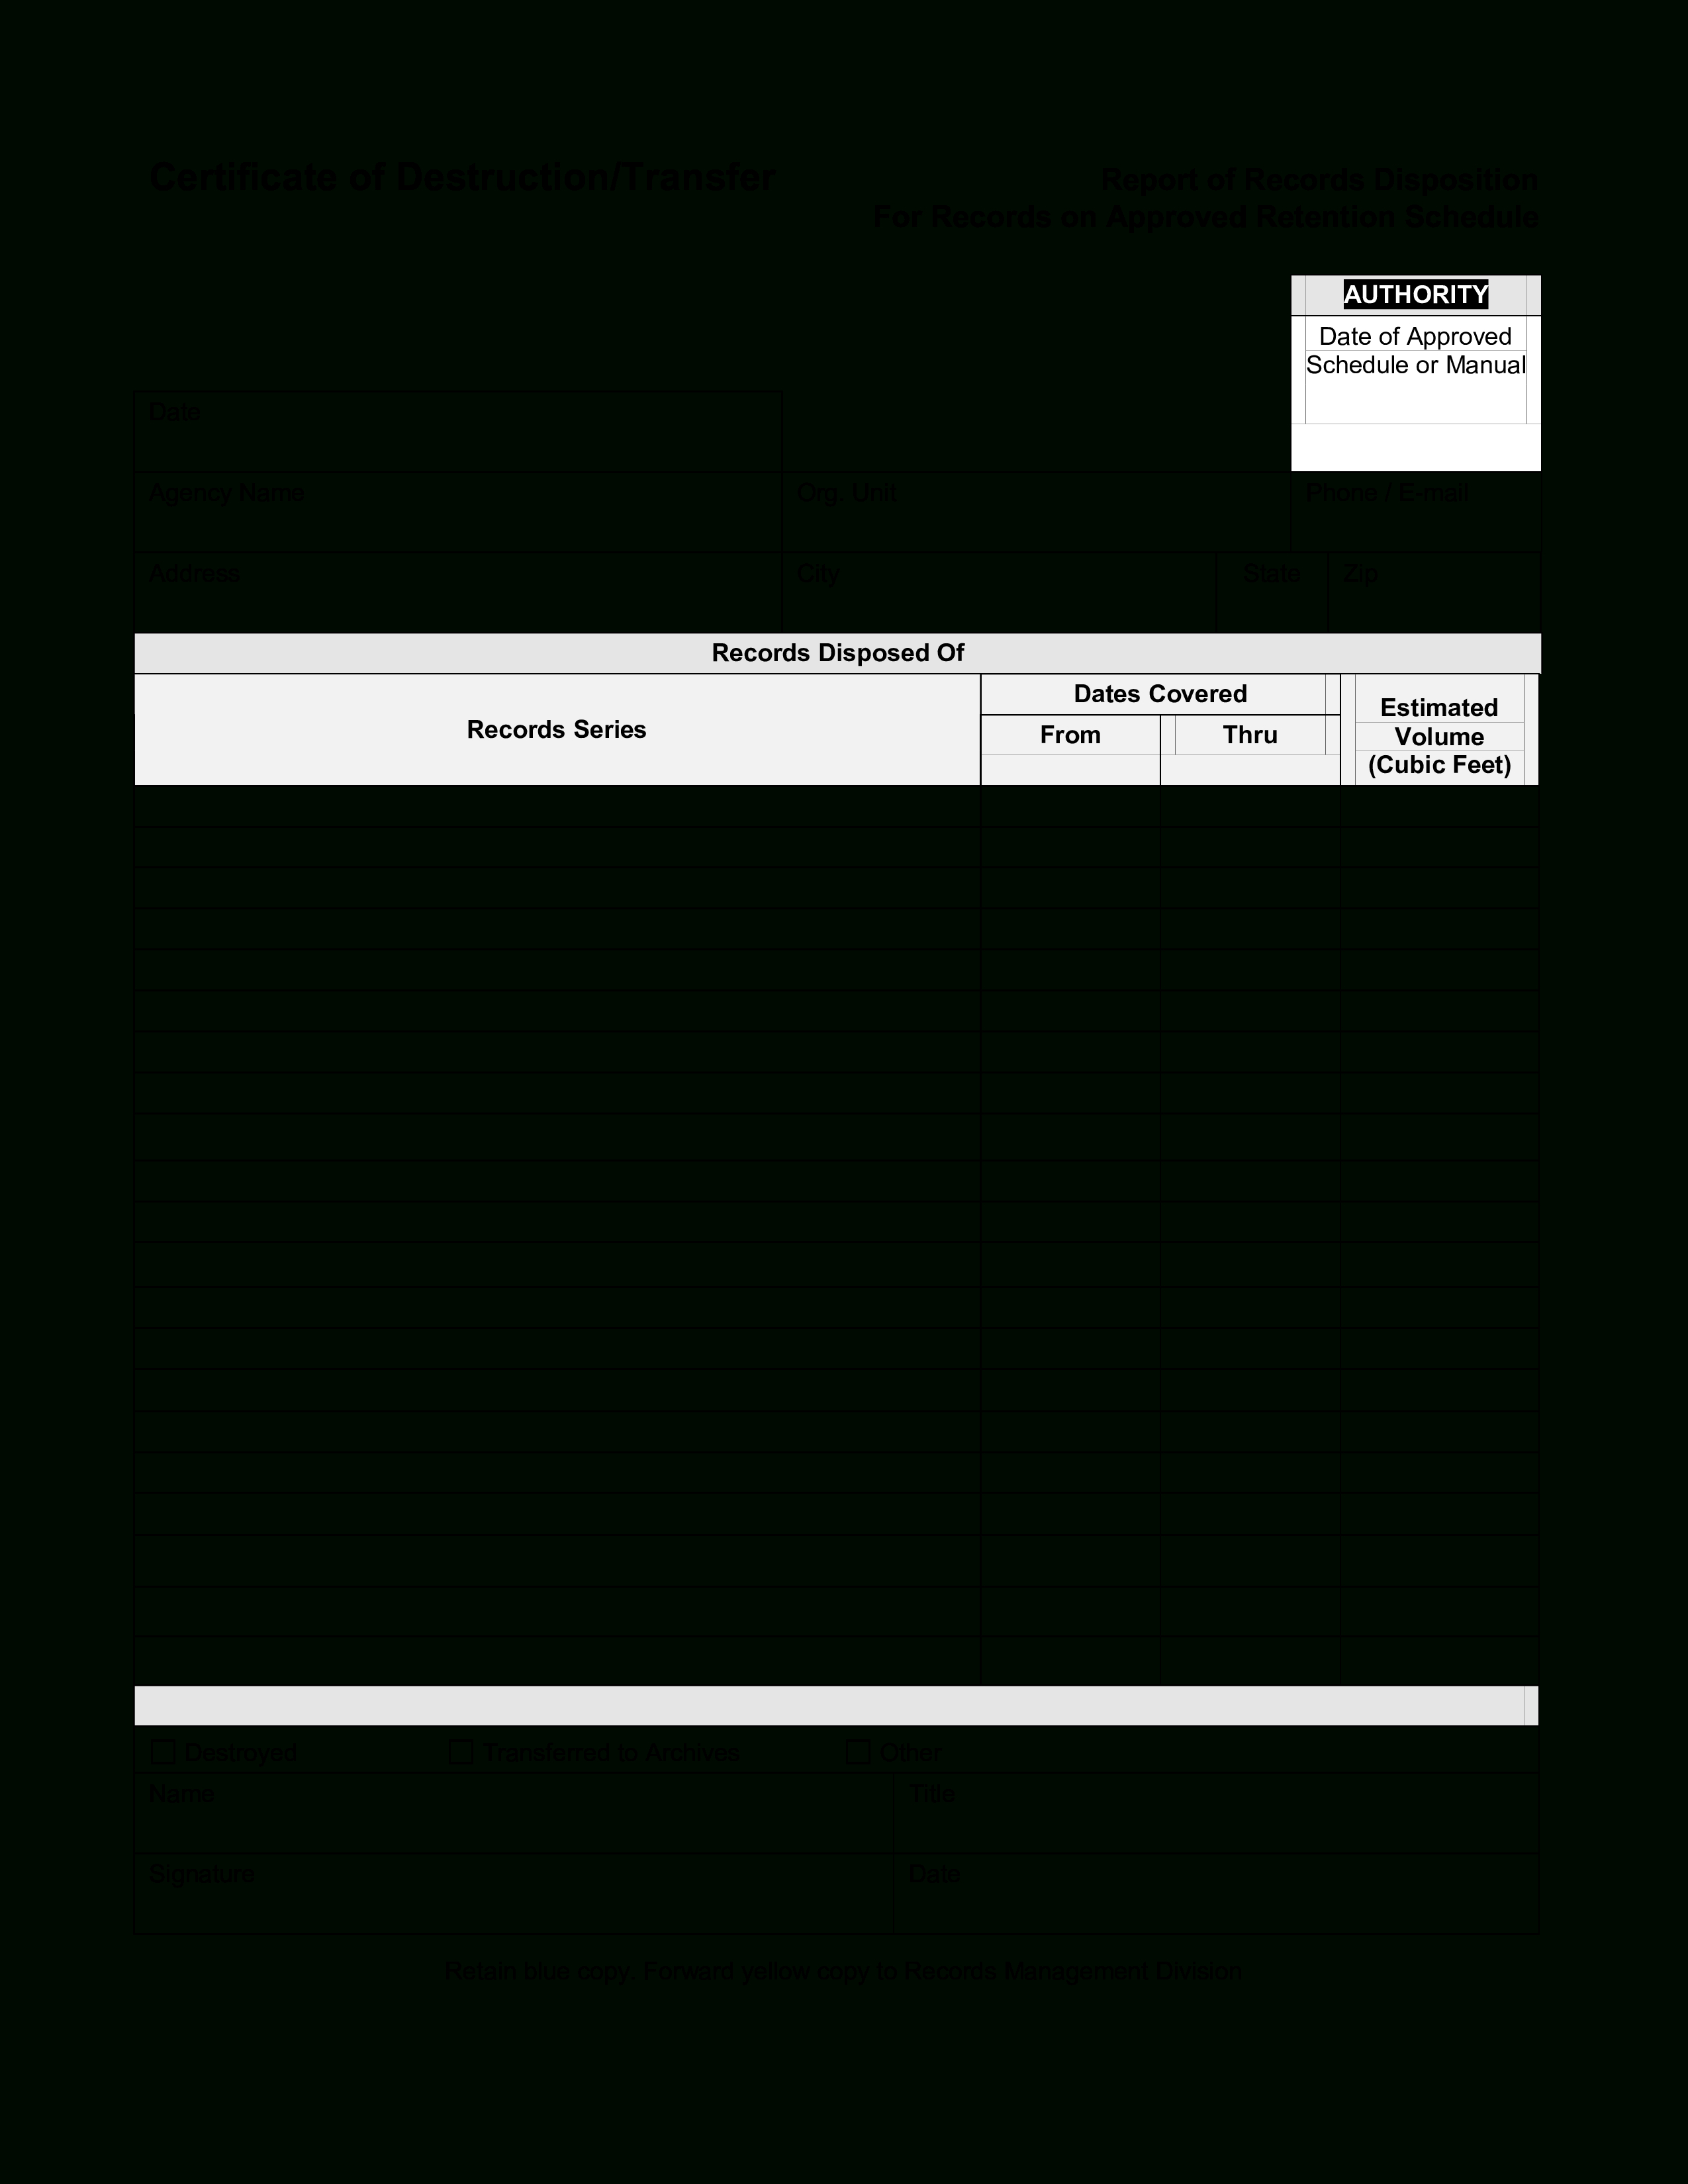 Blank Certificate Of Destruction - How To Create A Pertaining To Certificate Of Destruction Template